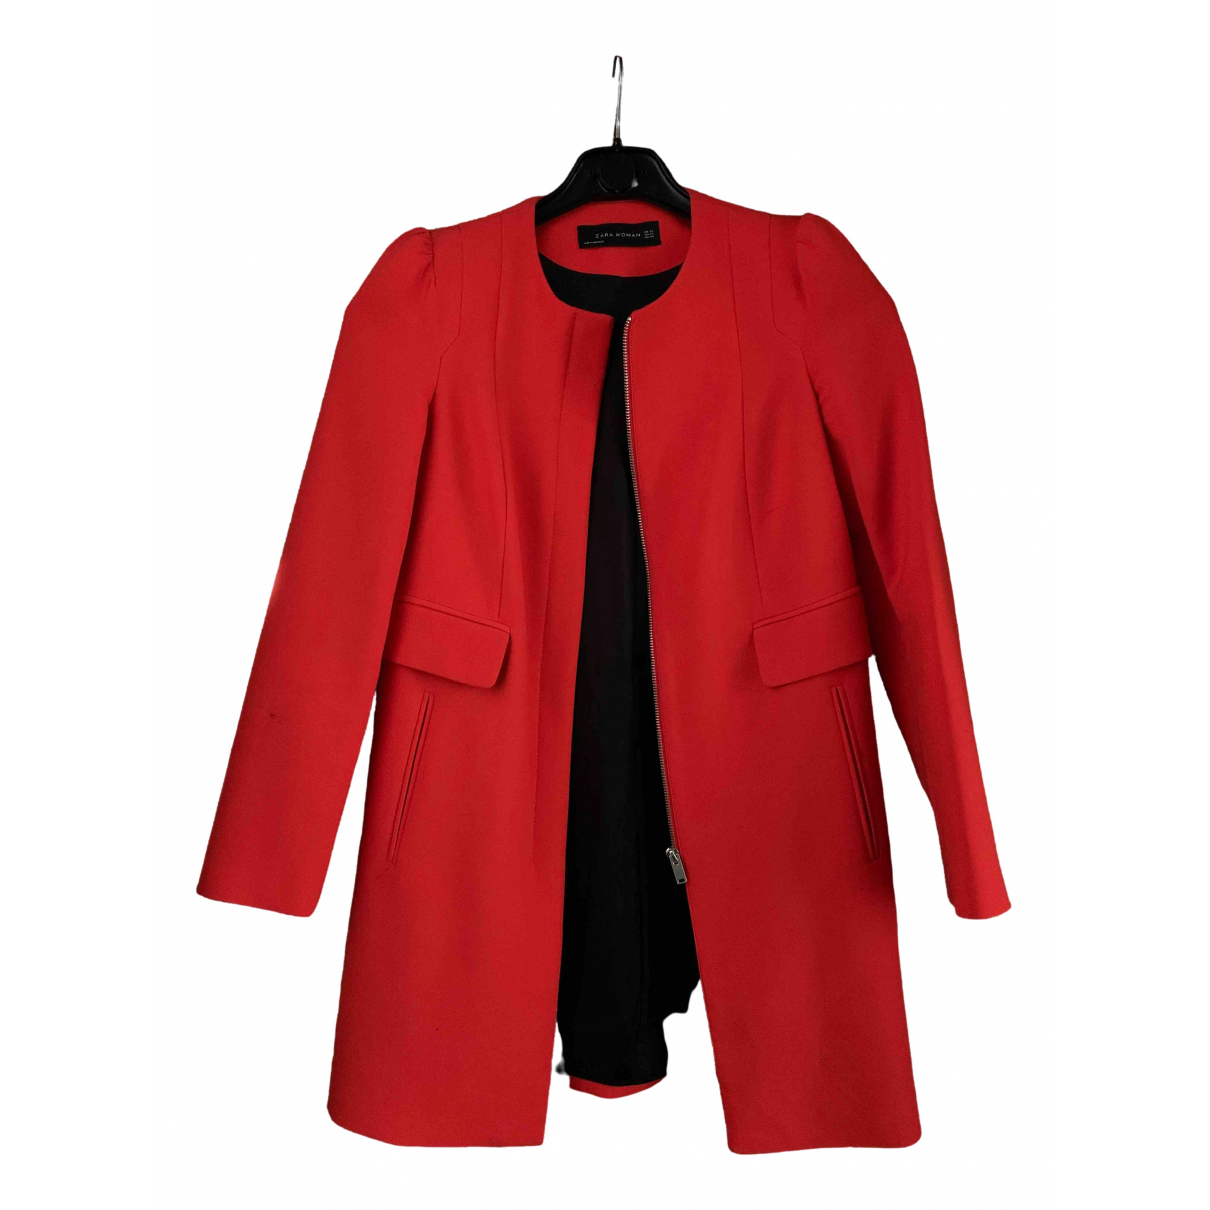 Zara \N Red jacket for Women XS International